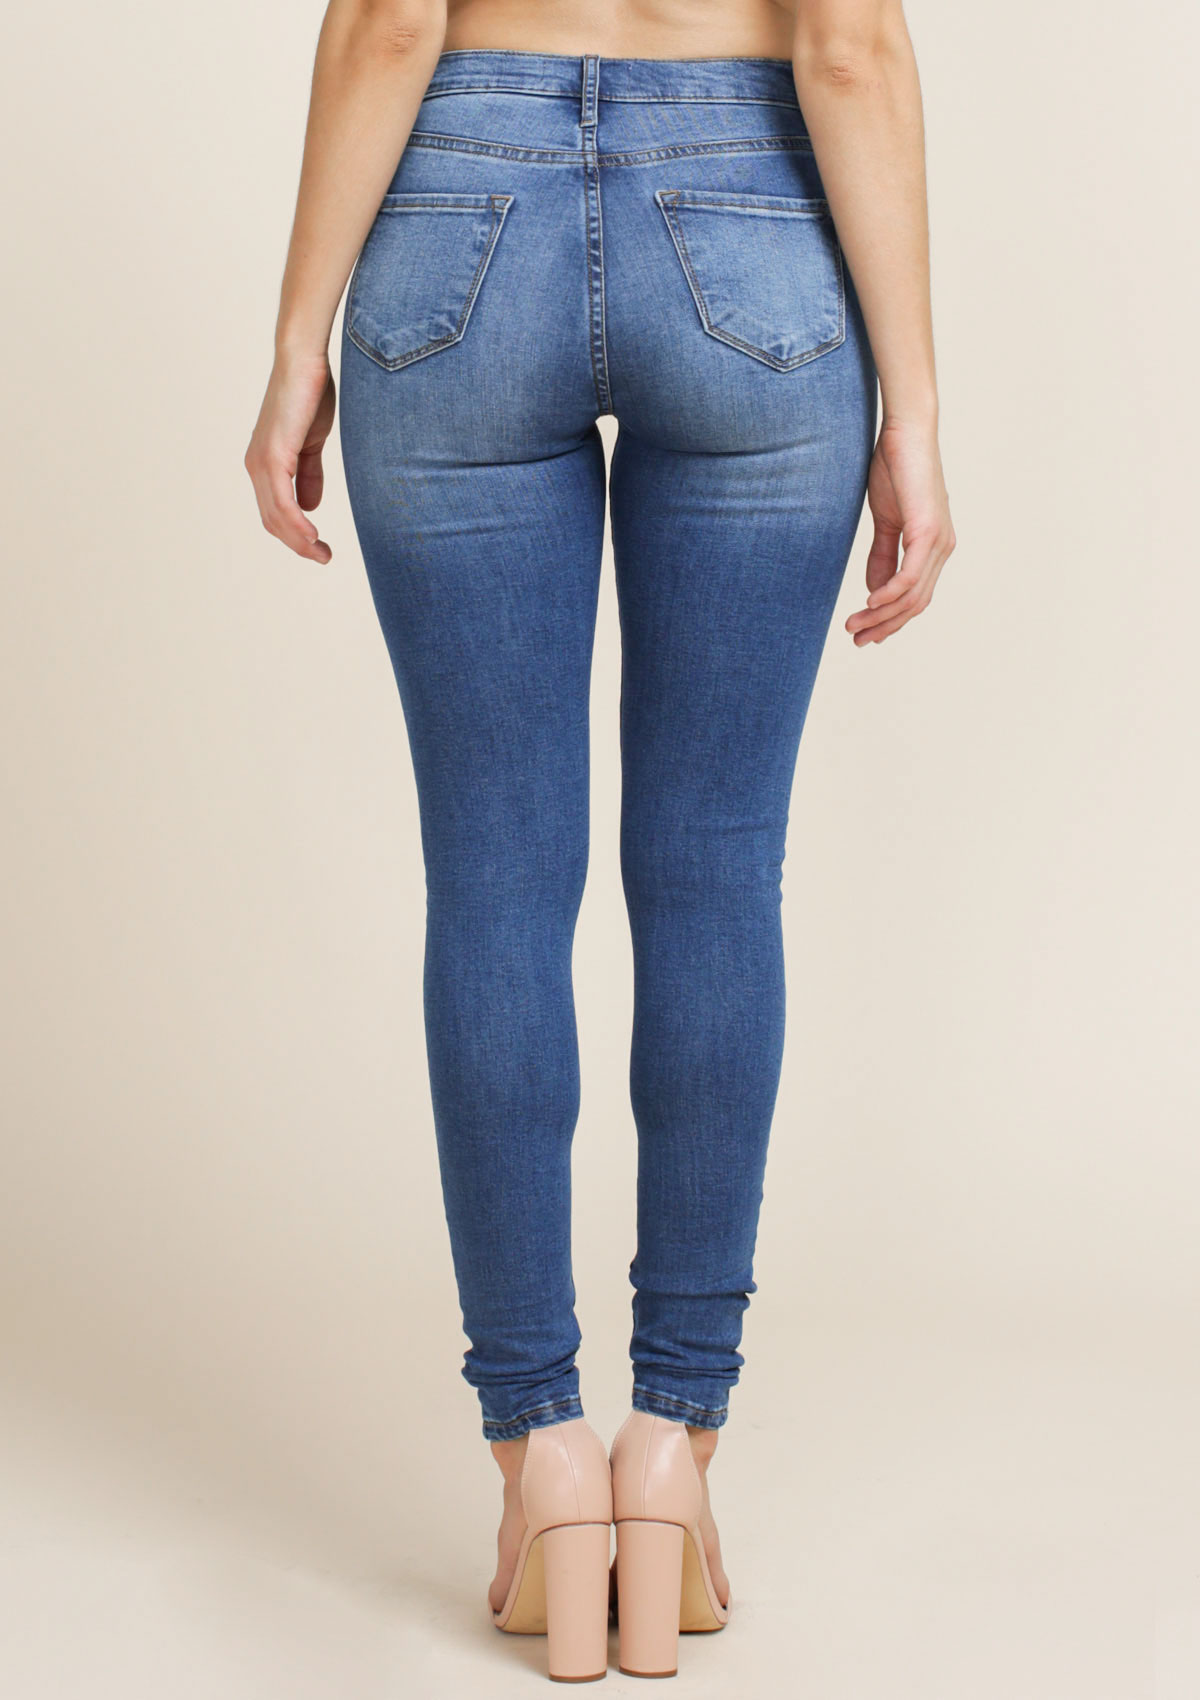 Honey Skinny Jeans